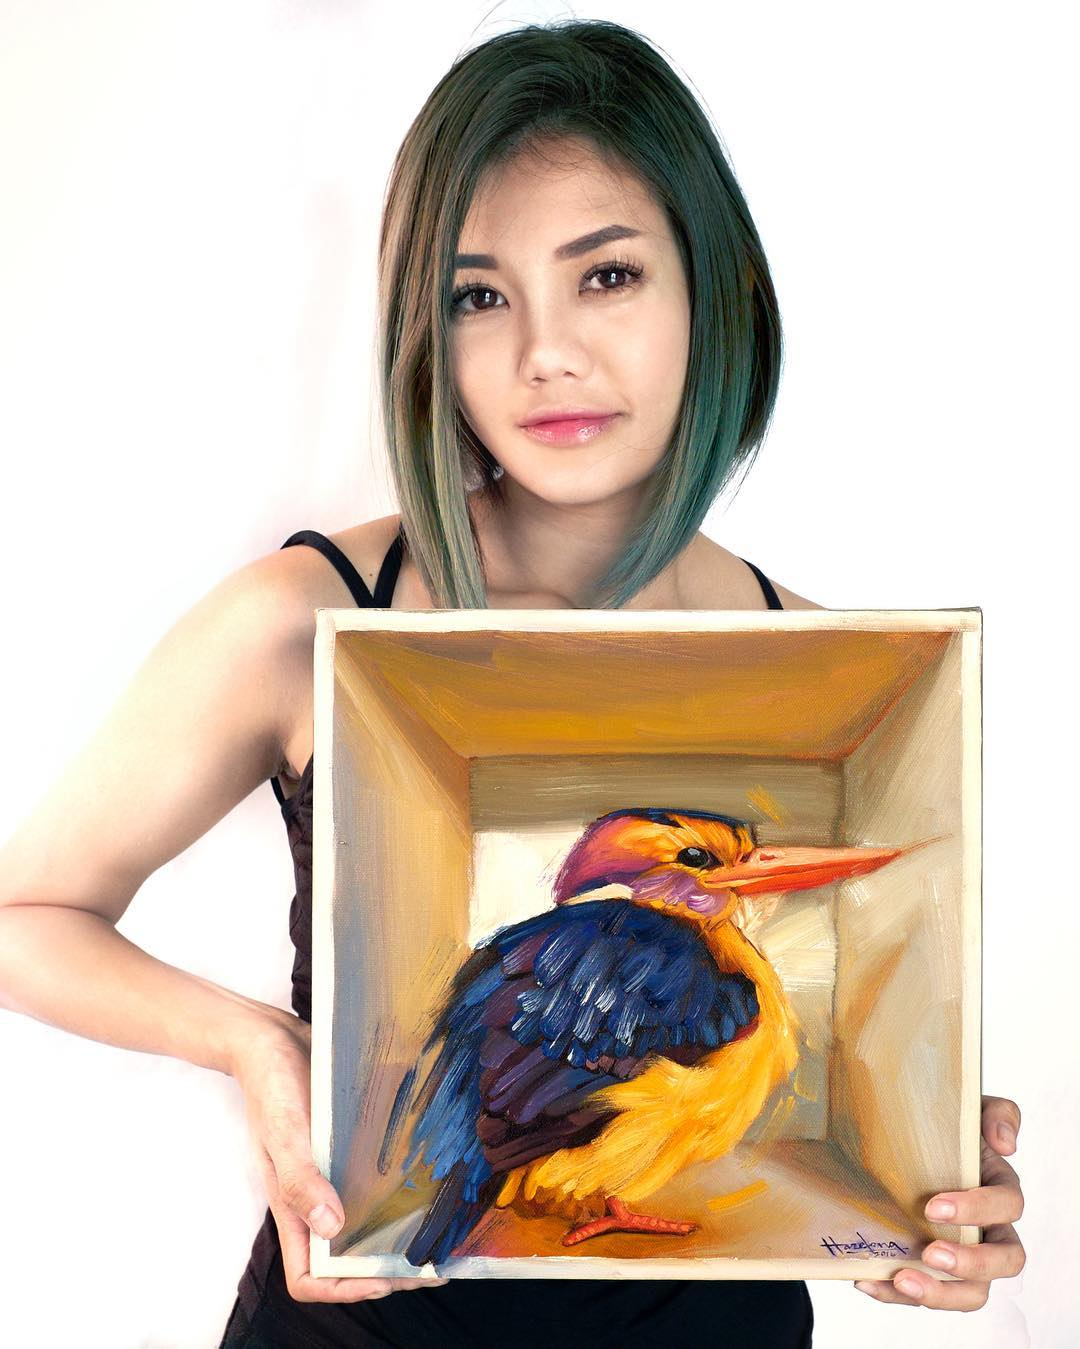 Malaysian Make-Up Artist Transforms Herself Into Artist And Speed Painter 9